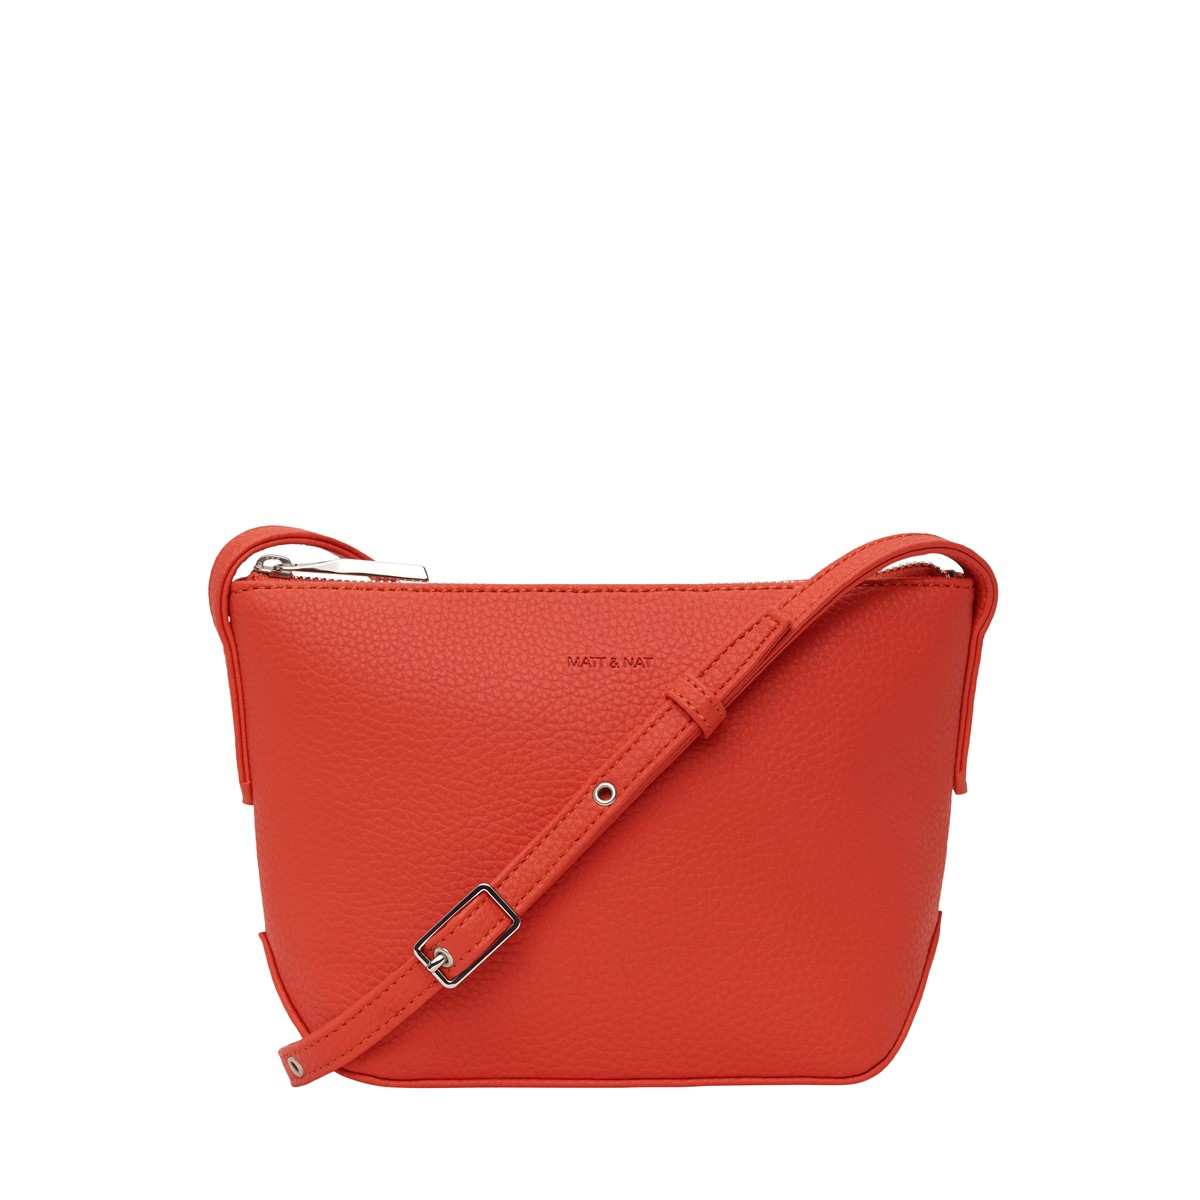 Sam Purity Crossbody Bag in Red